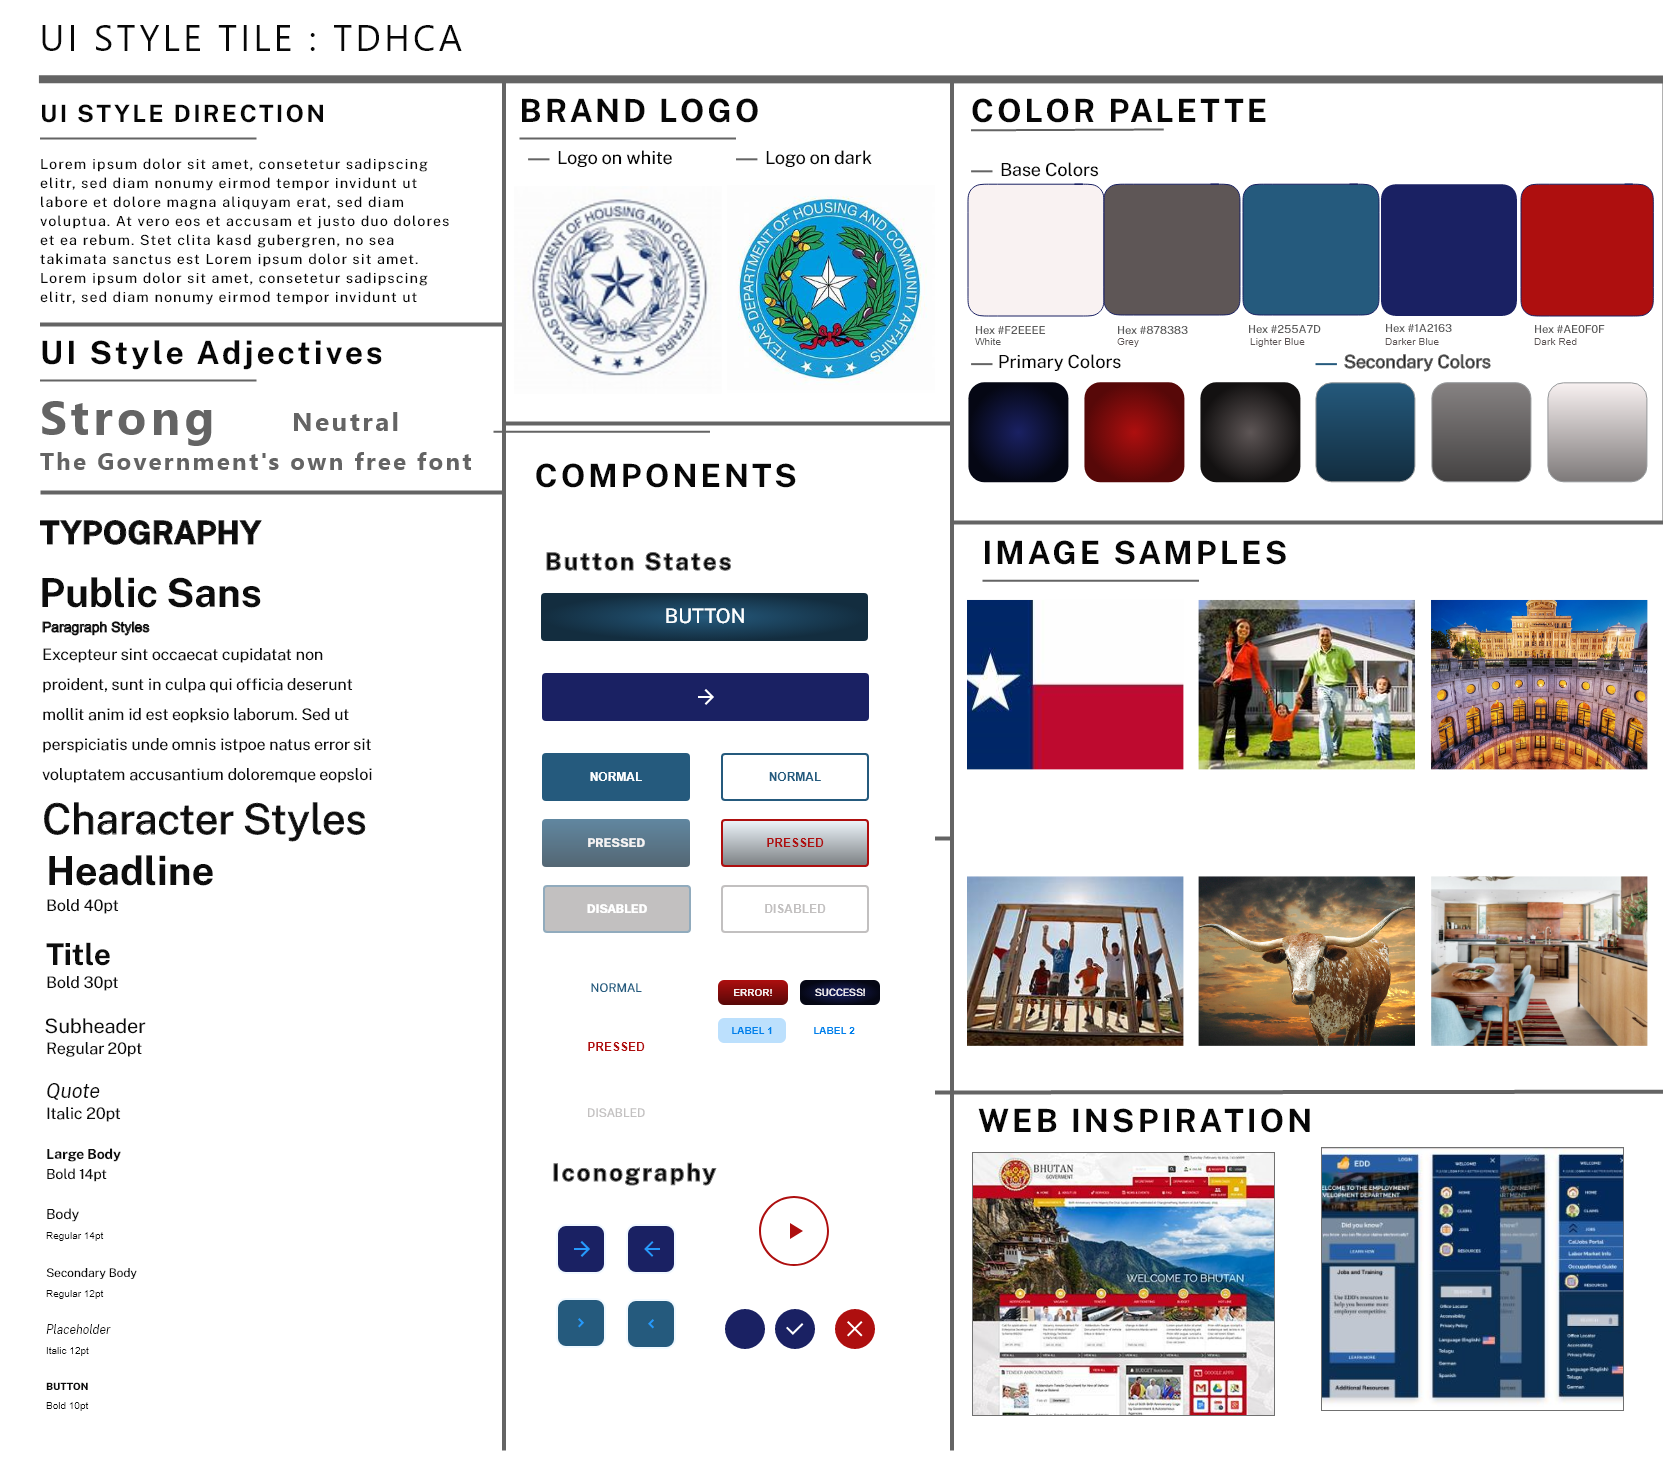 My Style Tile and Inspiration for the UI Redesign on this Project